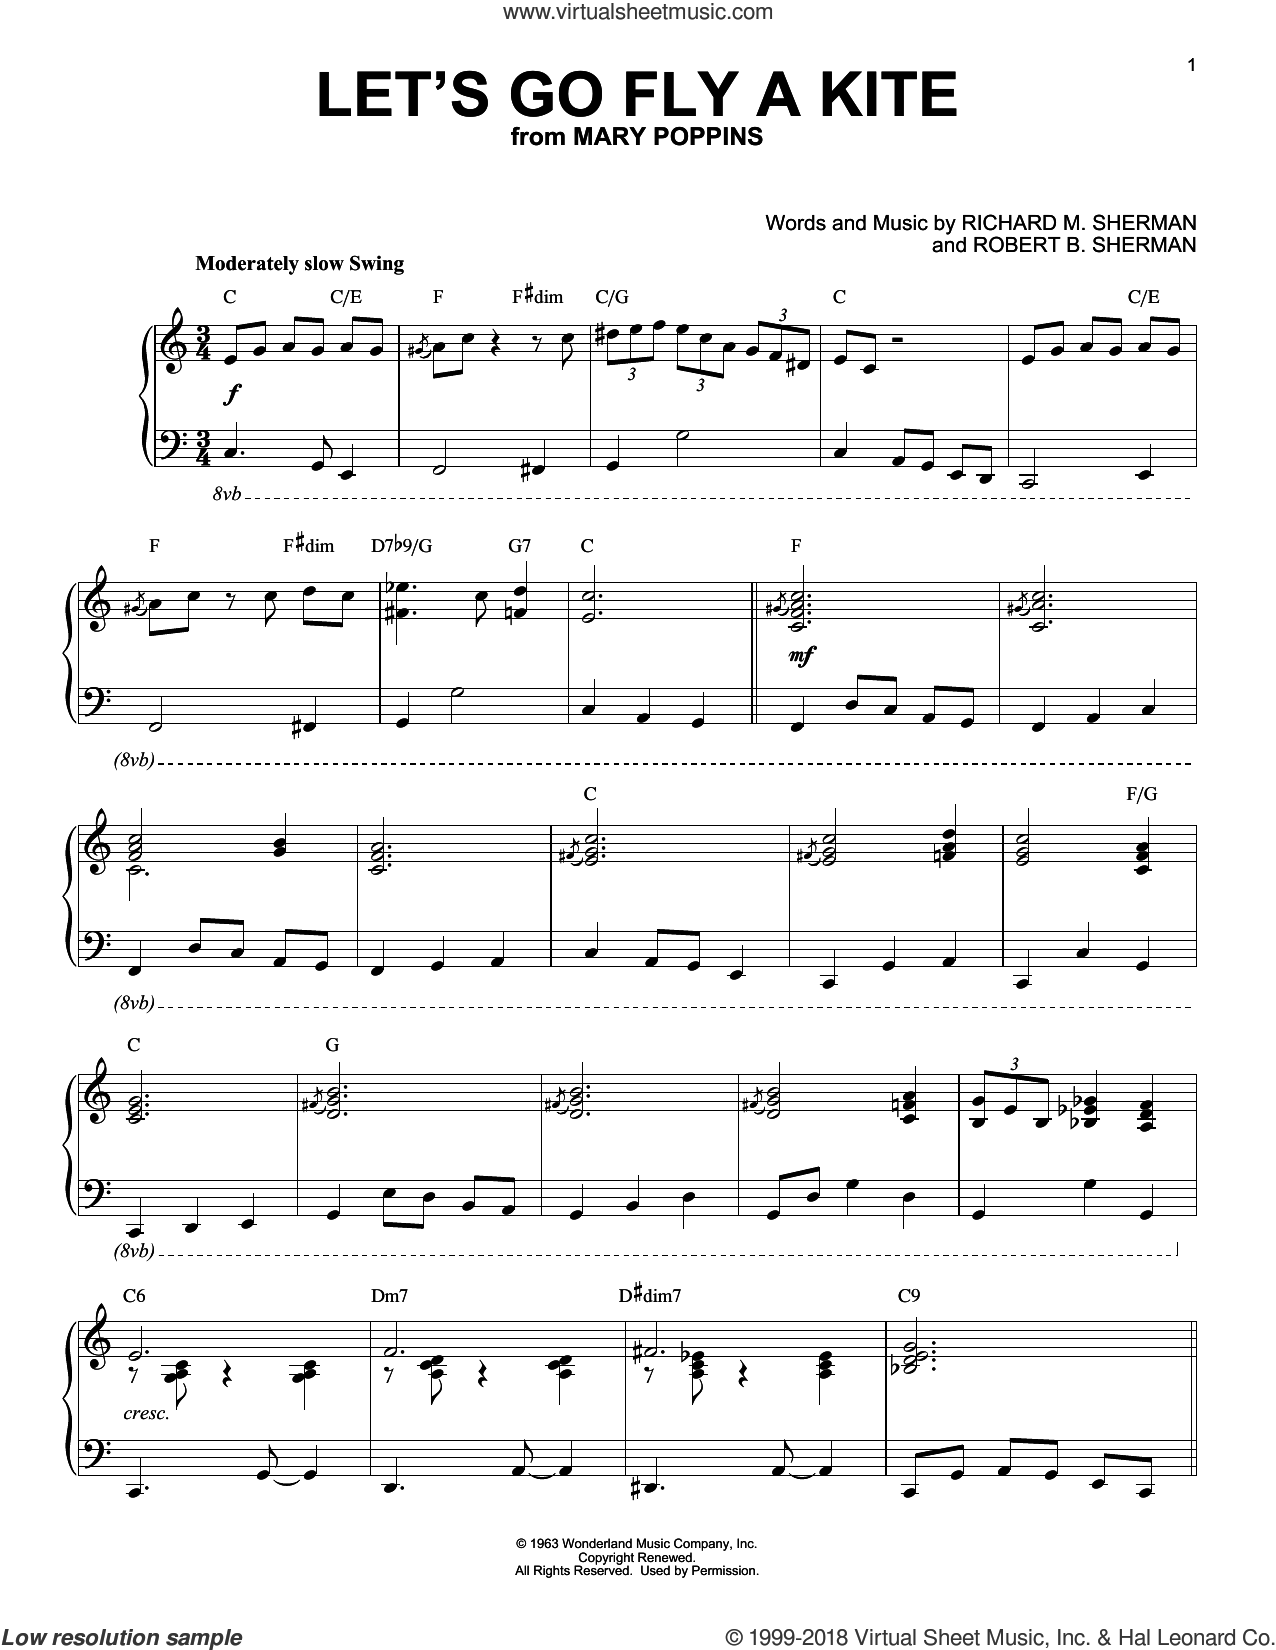 Let's Go Fly A Kite [Jazz version] (from Mary Poppins) sheet music for piano solo by Robert B. Sherman, Sherman Brothers and Richard M. Sherman, intermediate skill level